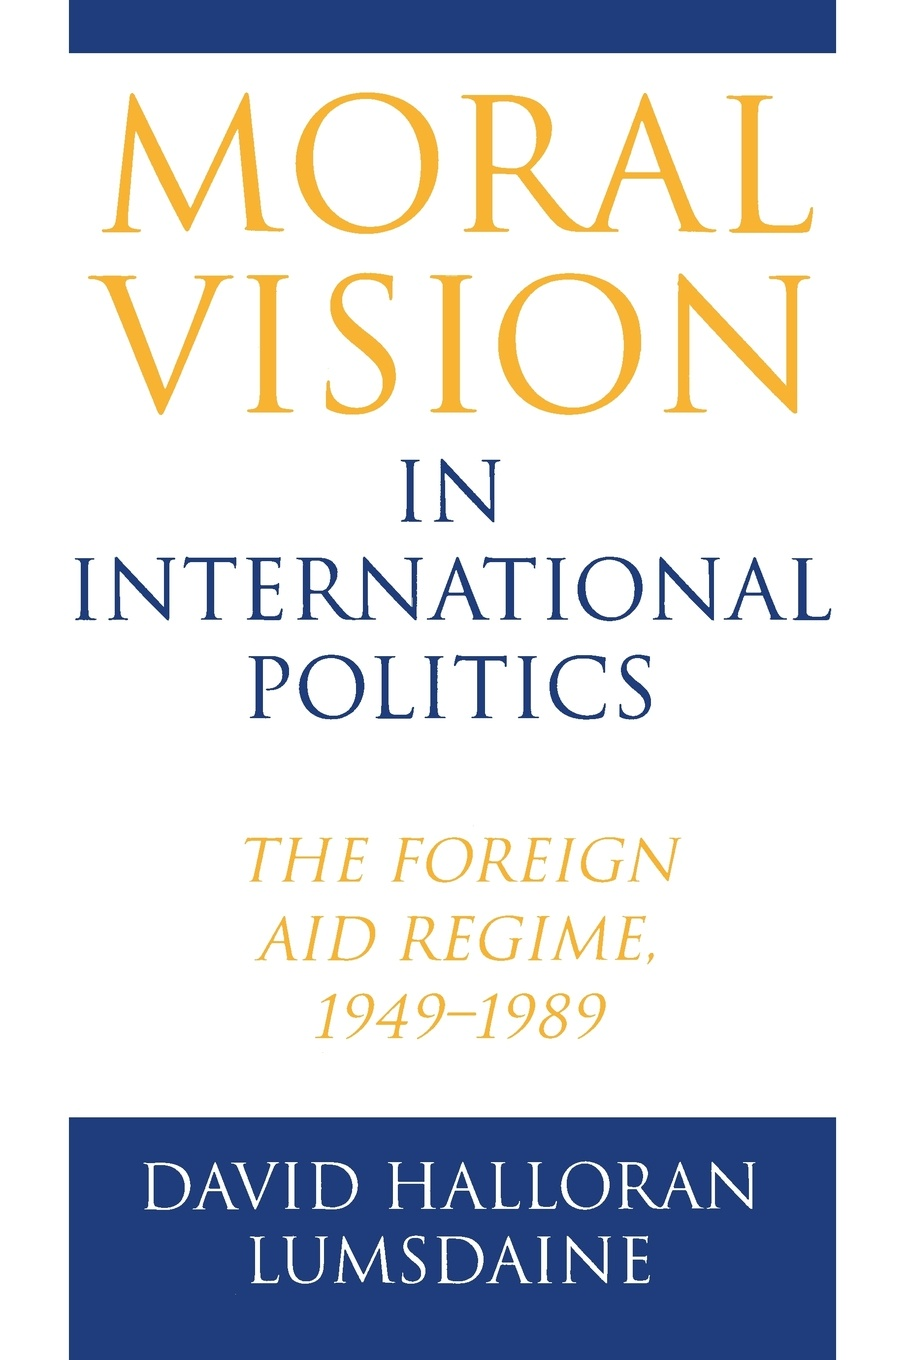 David Halloran Lumsdaine Moral Vision in International Politics. The Foreign Aid Regime, 1949-1989 the rationale behind foreign aid